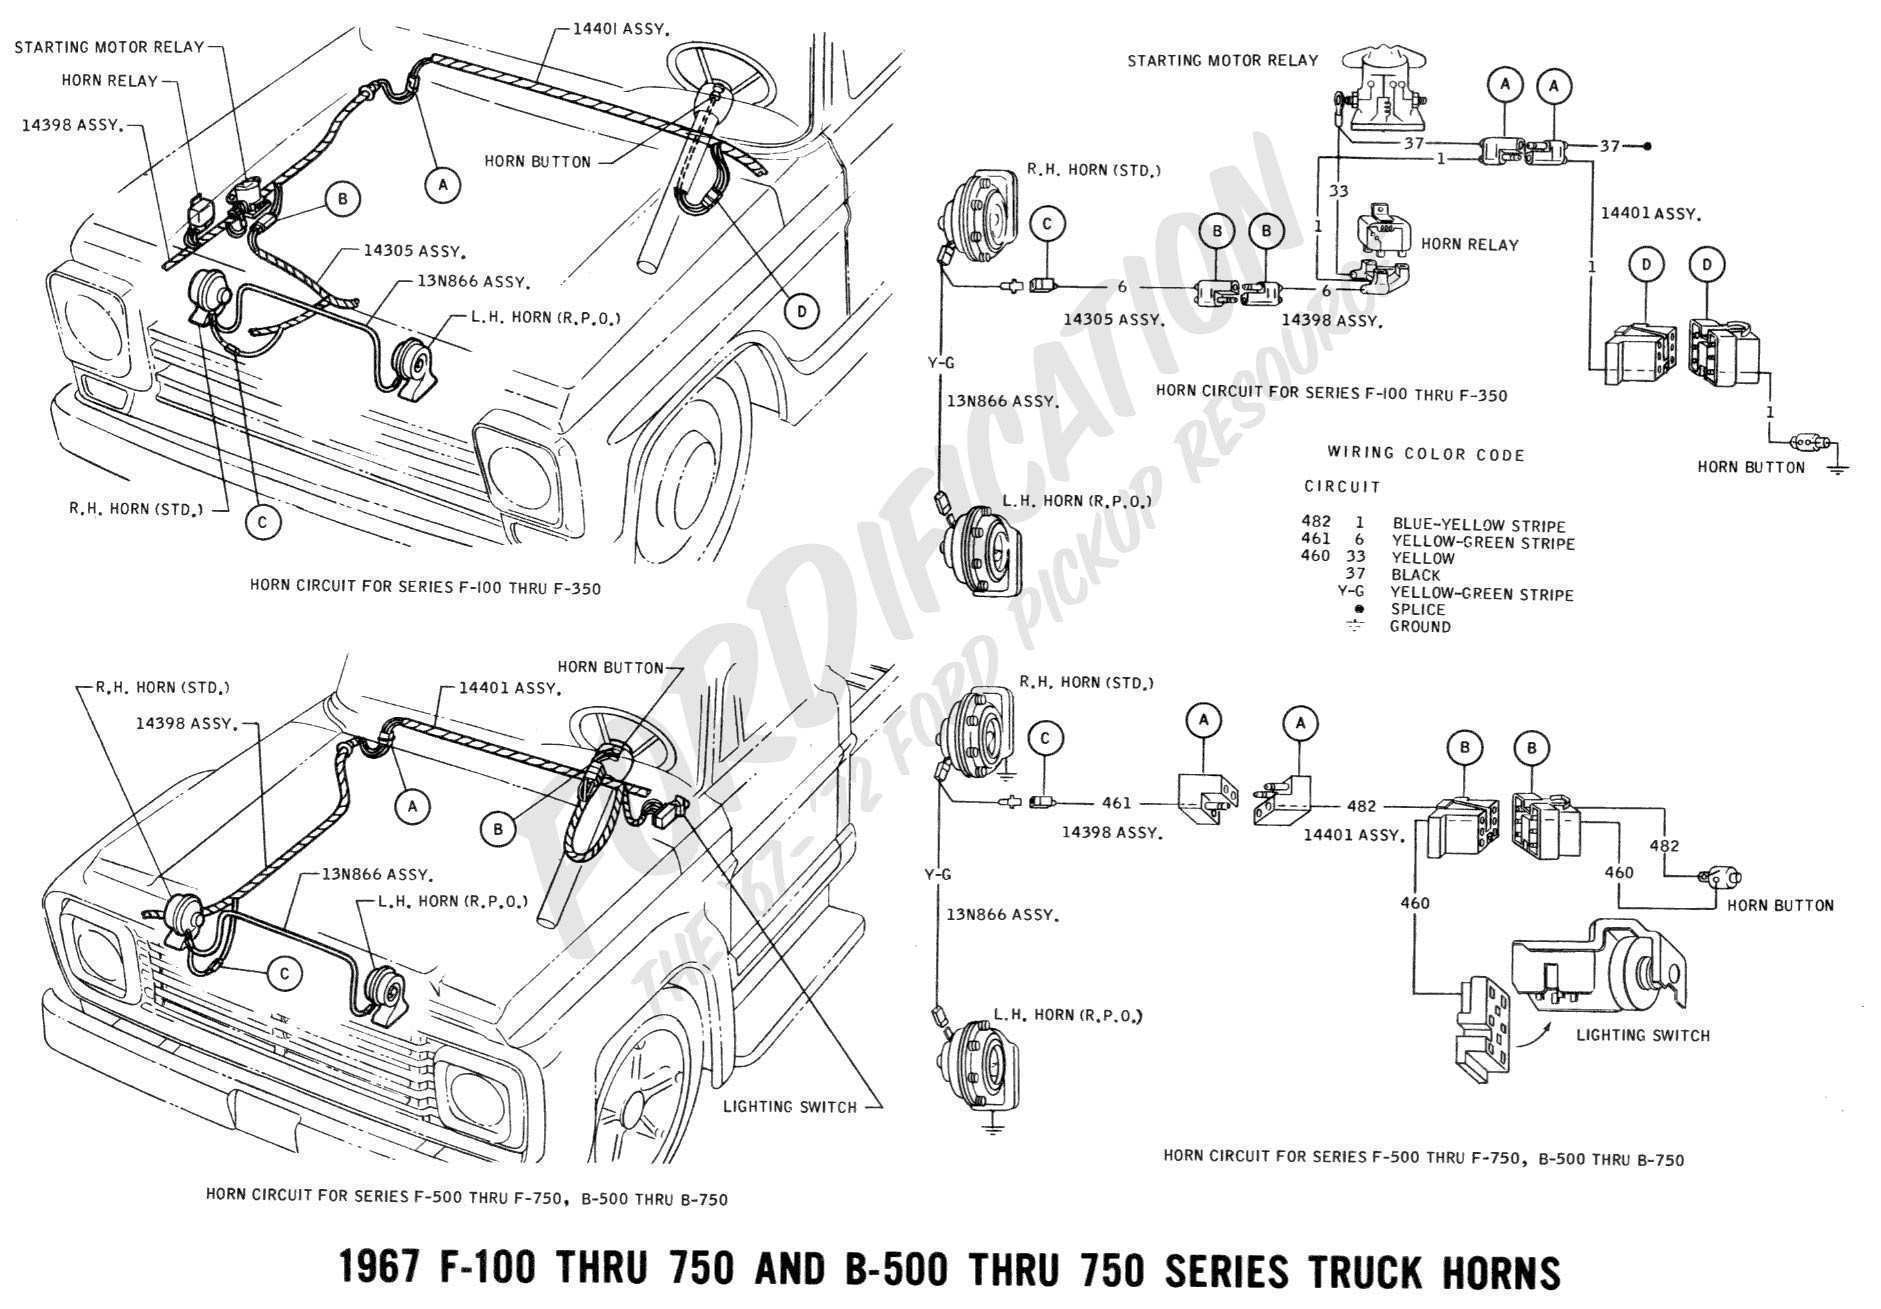 Ford Wiring - Auto Electrical Wiring Diagram - Ford Starter Solenoid Wiring Diagram